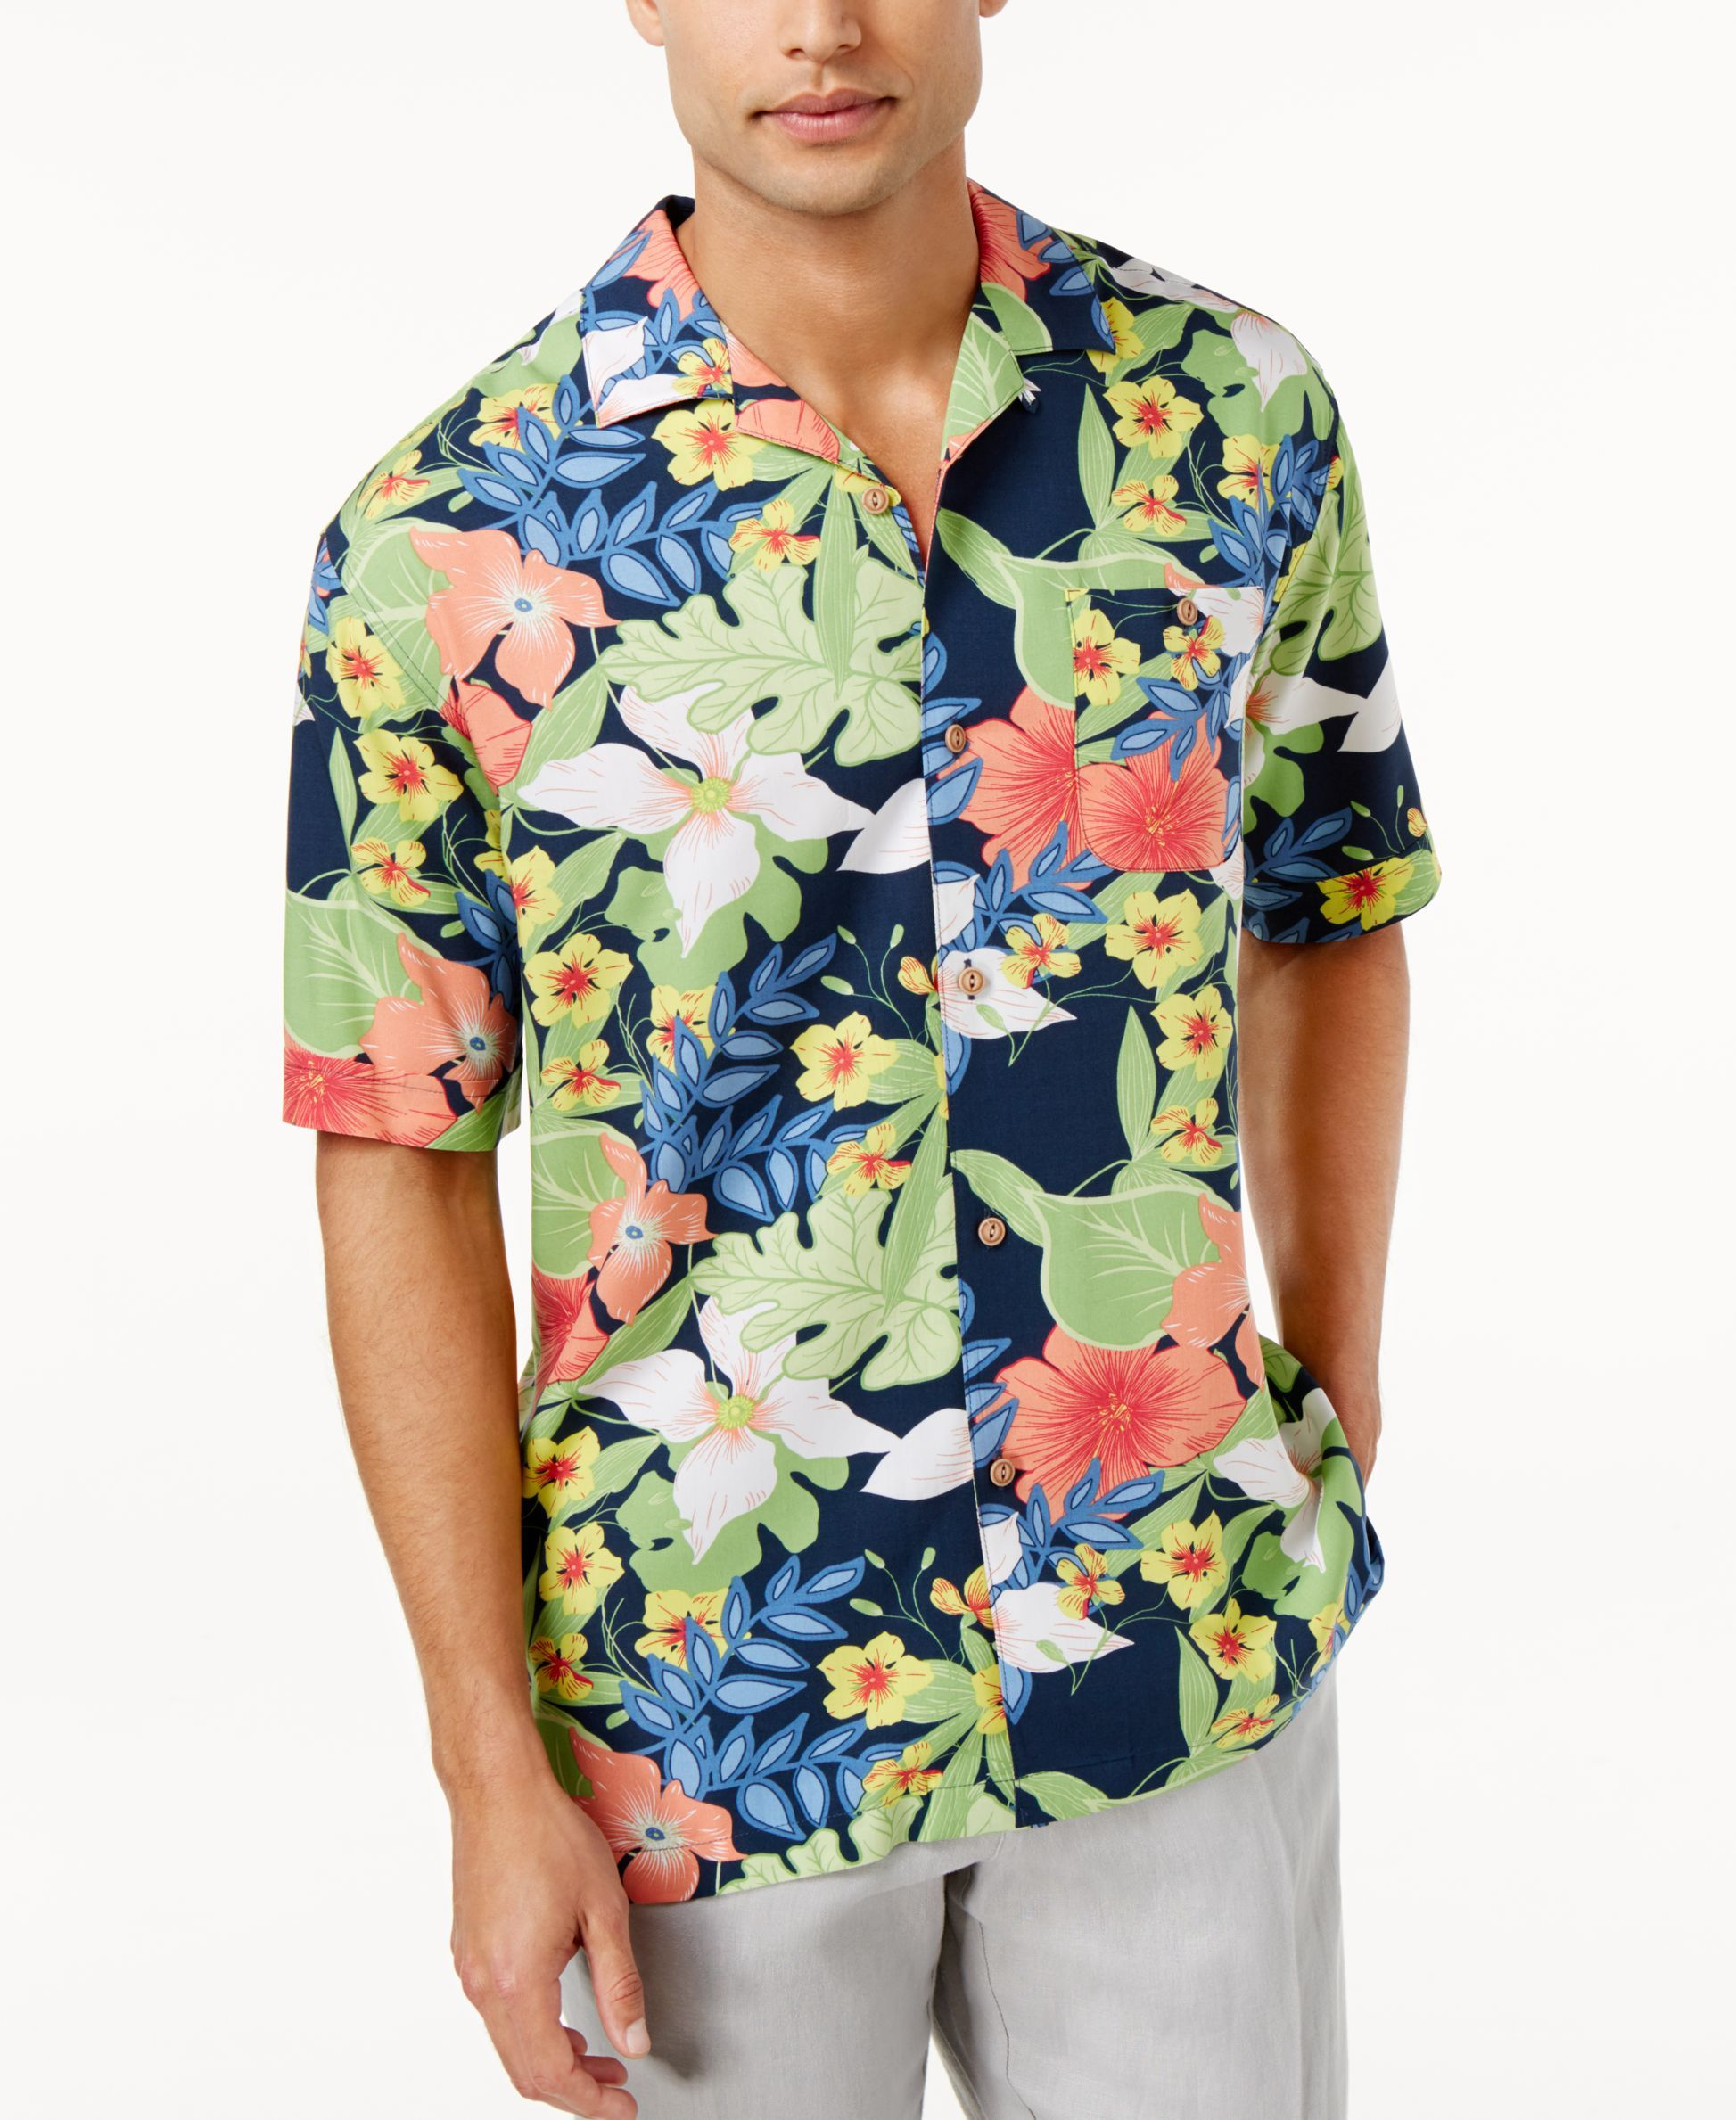 d58151a8453 Cubavera Men's Floral Print Shirt | Products